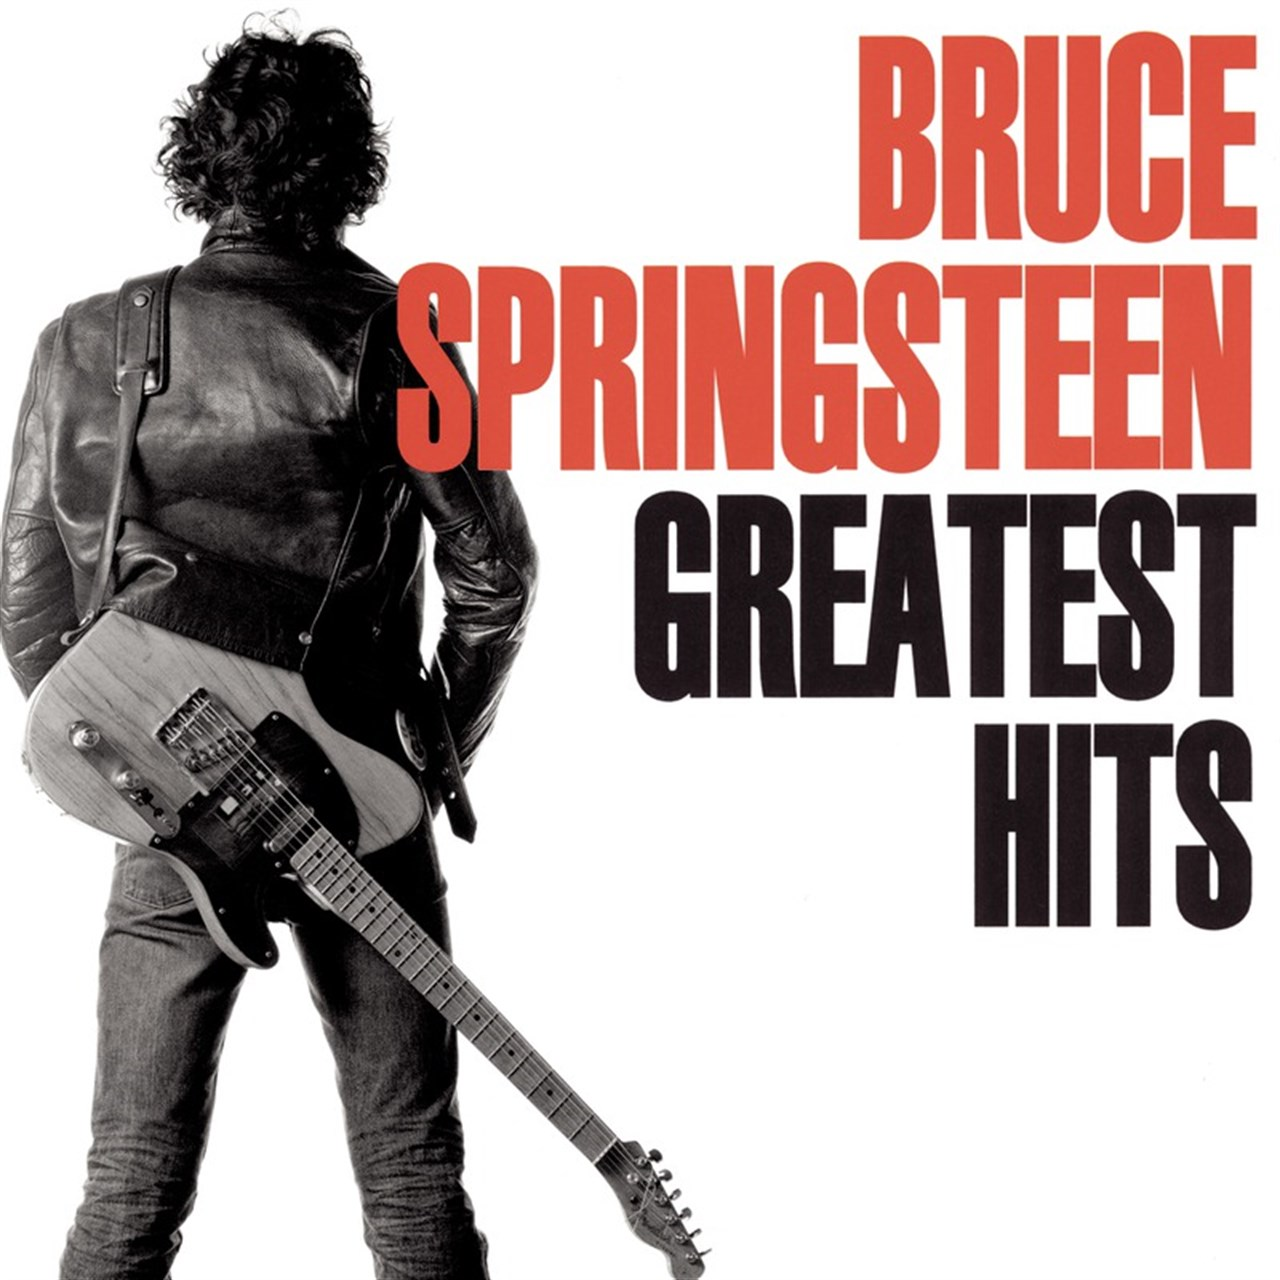 Bruce Springsteen Bruce Springsteen - Greatest Hits (2 LP) bruce springsteen live in dublin blu ray